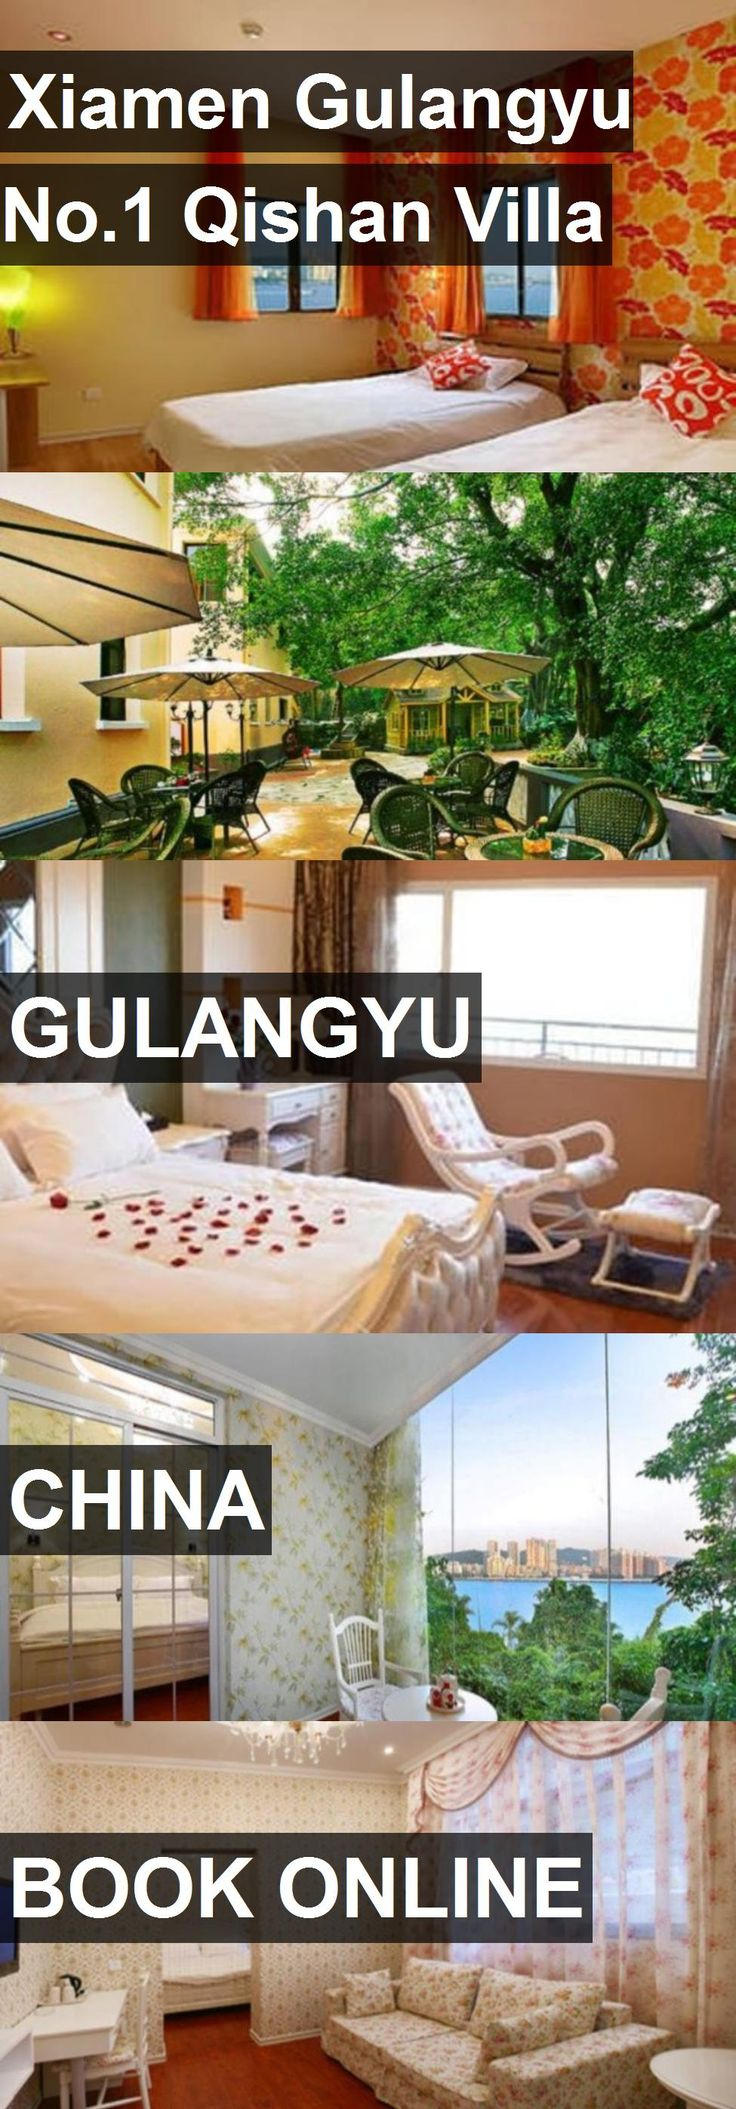 Hotel Xiamen Gulangyu No.1 Qishan Villa in Gulangyu, China. For more information, photos, reviews and best prices please follow the link. #China #Gulangyu #XiamenGulangyuNo.1QishanVilla #hotel #travel #vacation